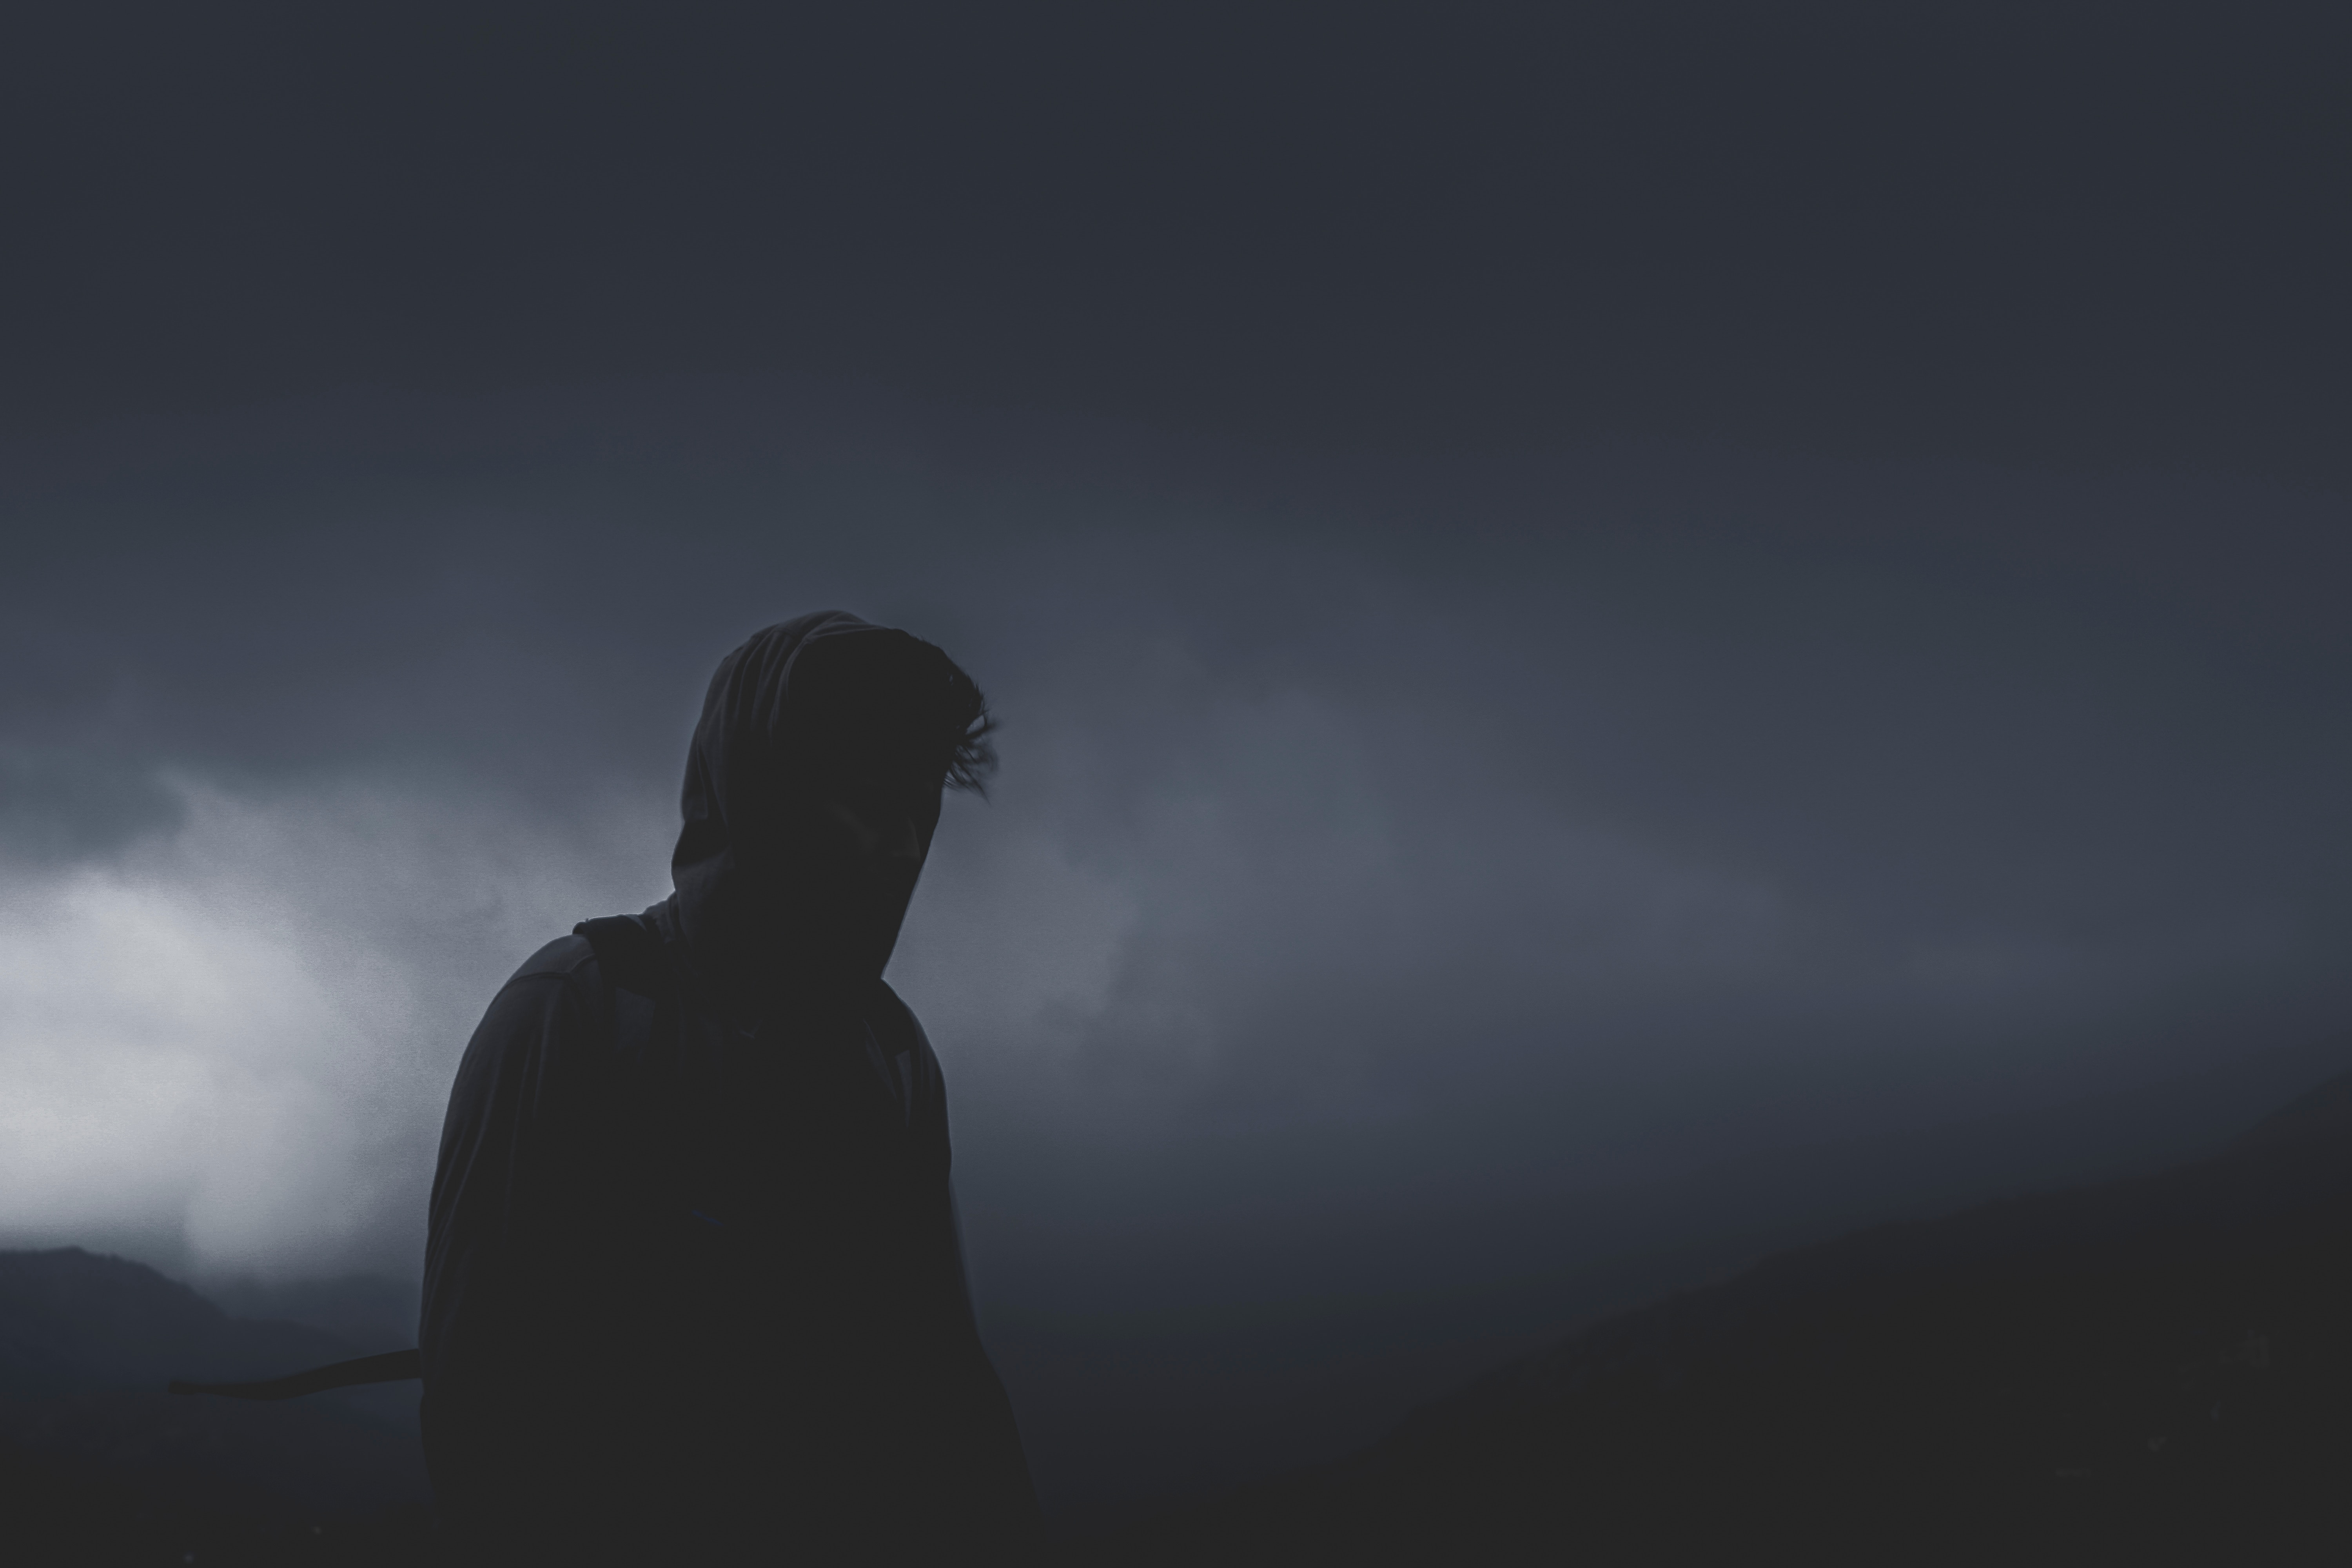 The dark silhouette of a man walking alone in the mountains on a dark, cloudy night